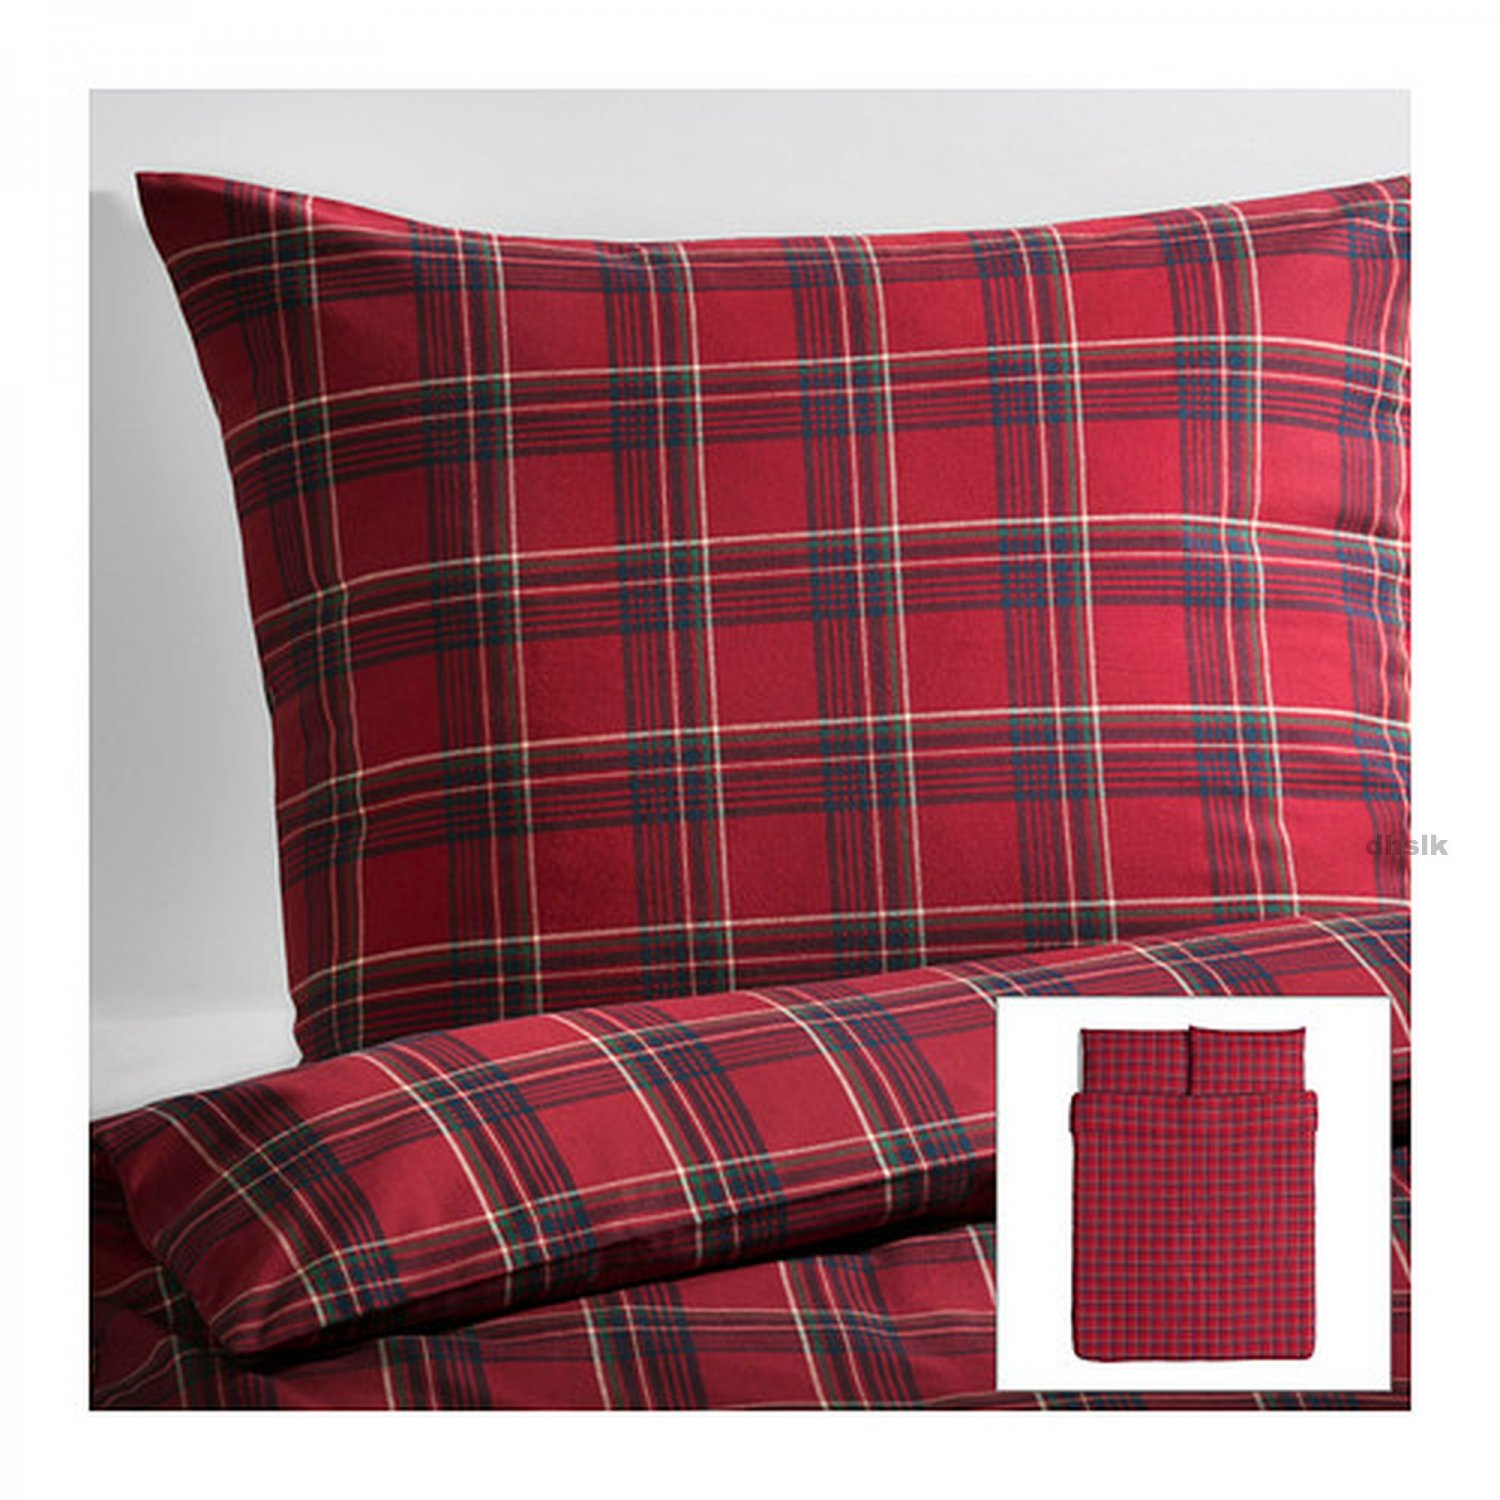 ikea annbritt queen full duvet cover set red blue green plaid tartan check xmas multicolor. Black Bedroom Furniture Sets. Home Design Ideas